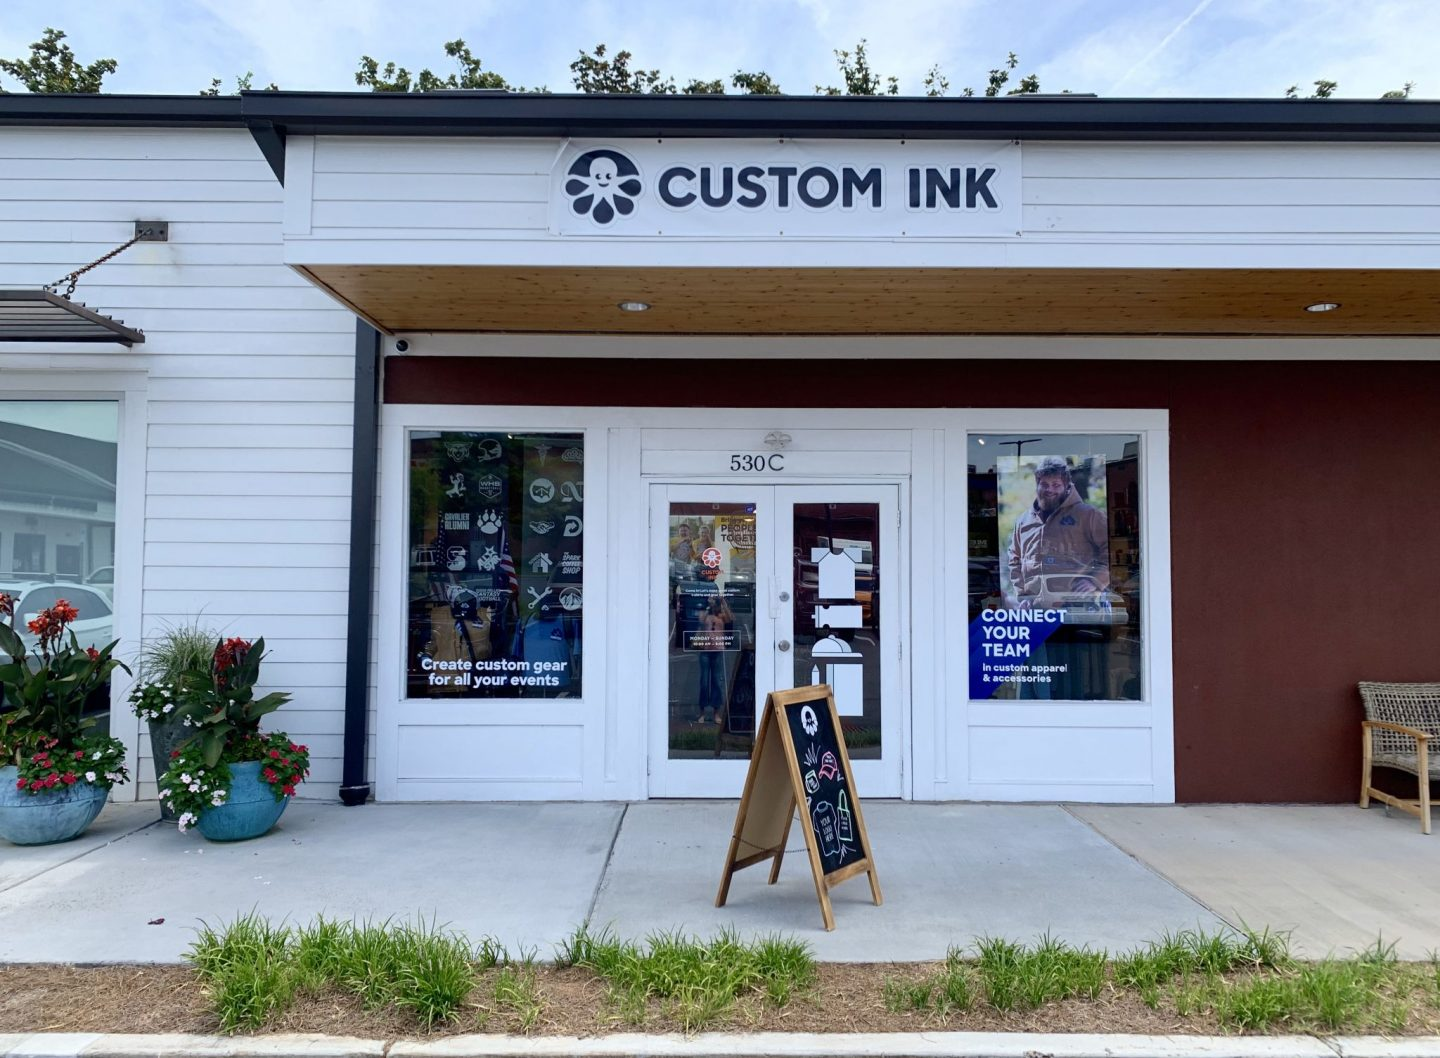 Custom Ink - Park Road Shopping Center - Charlotte, NC - Lauren Schwaiger Lifestyle Blog